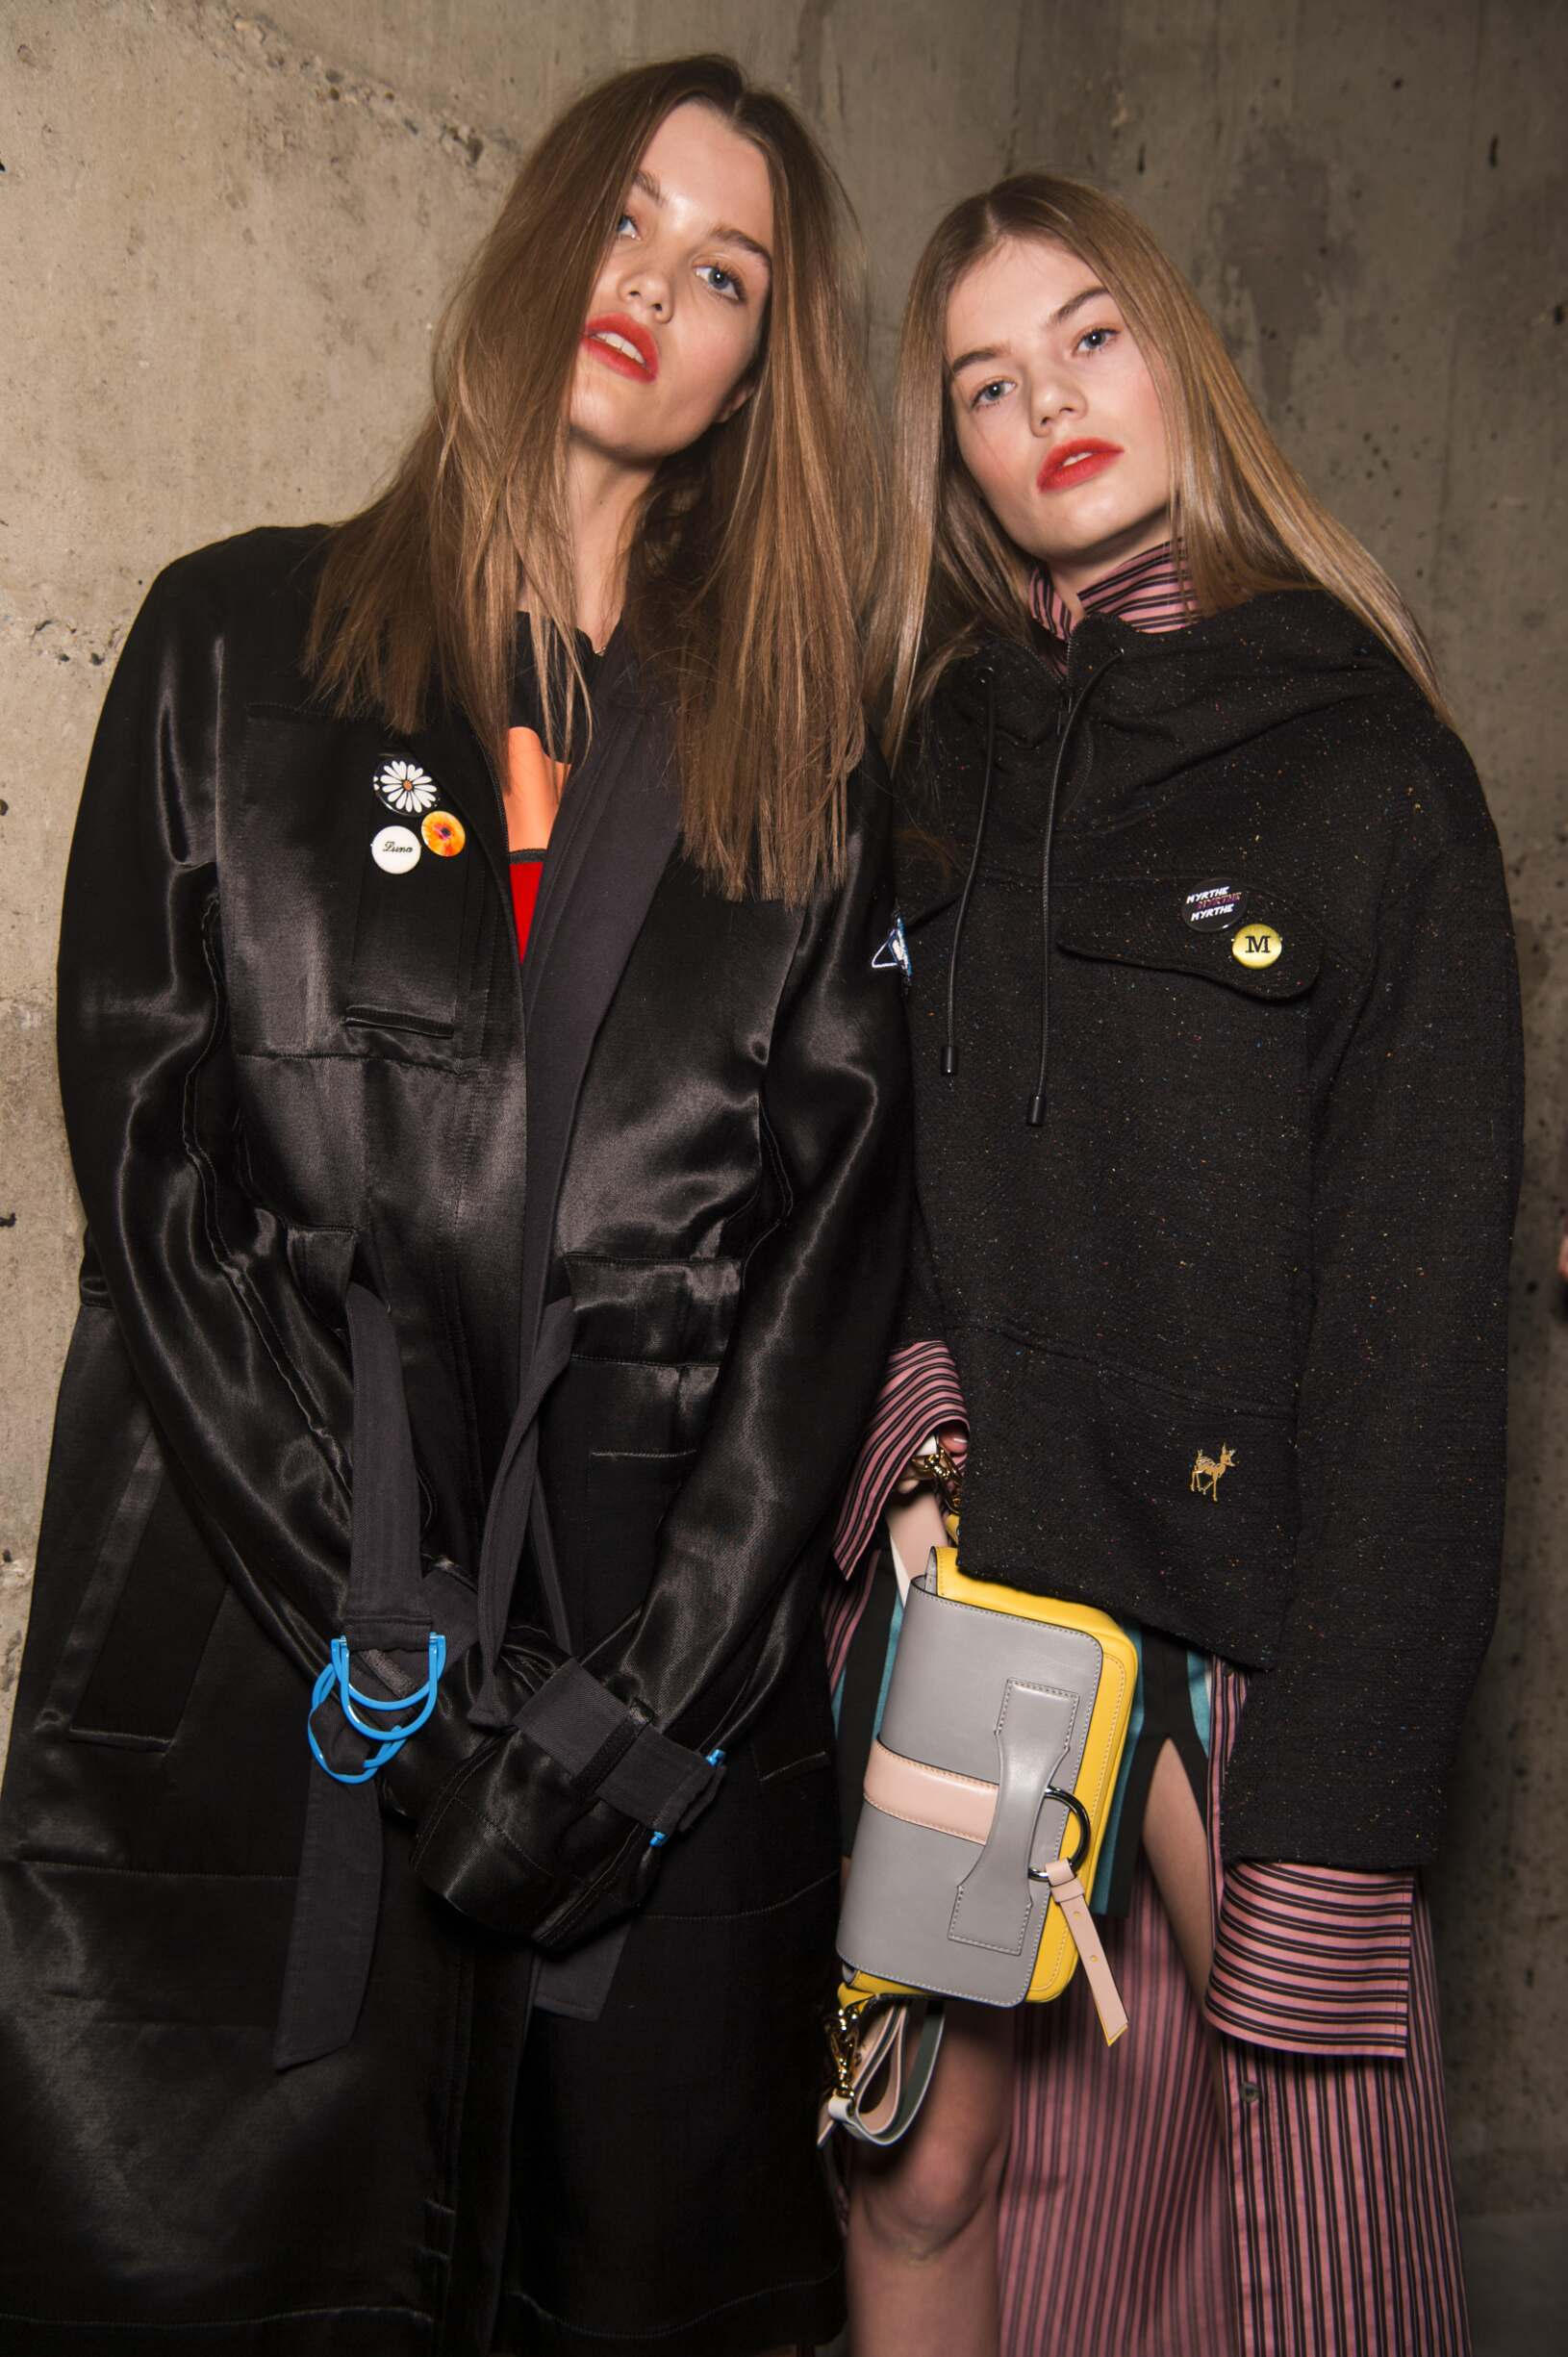 Topshop Unique Backstage FW 2017-18 London